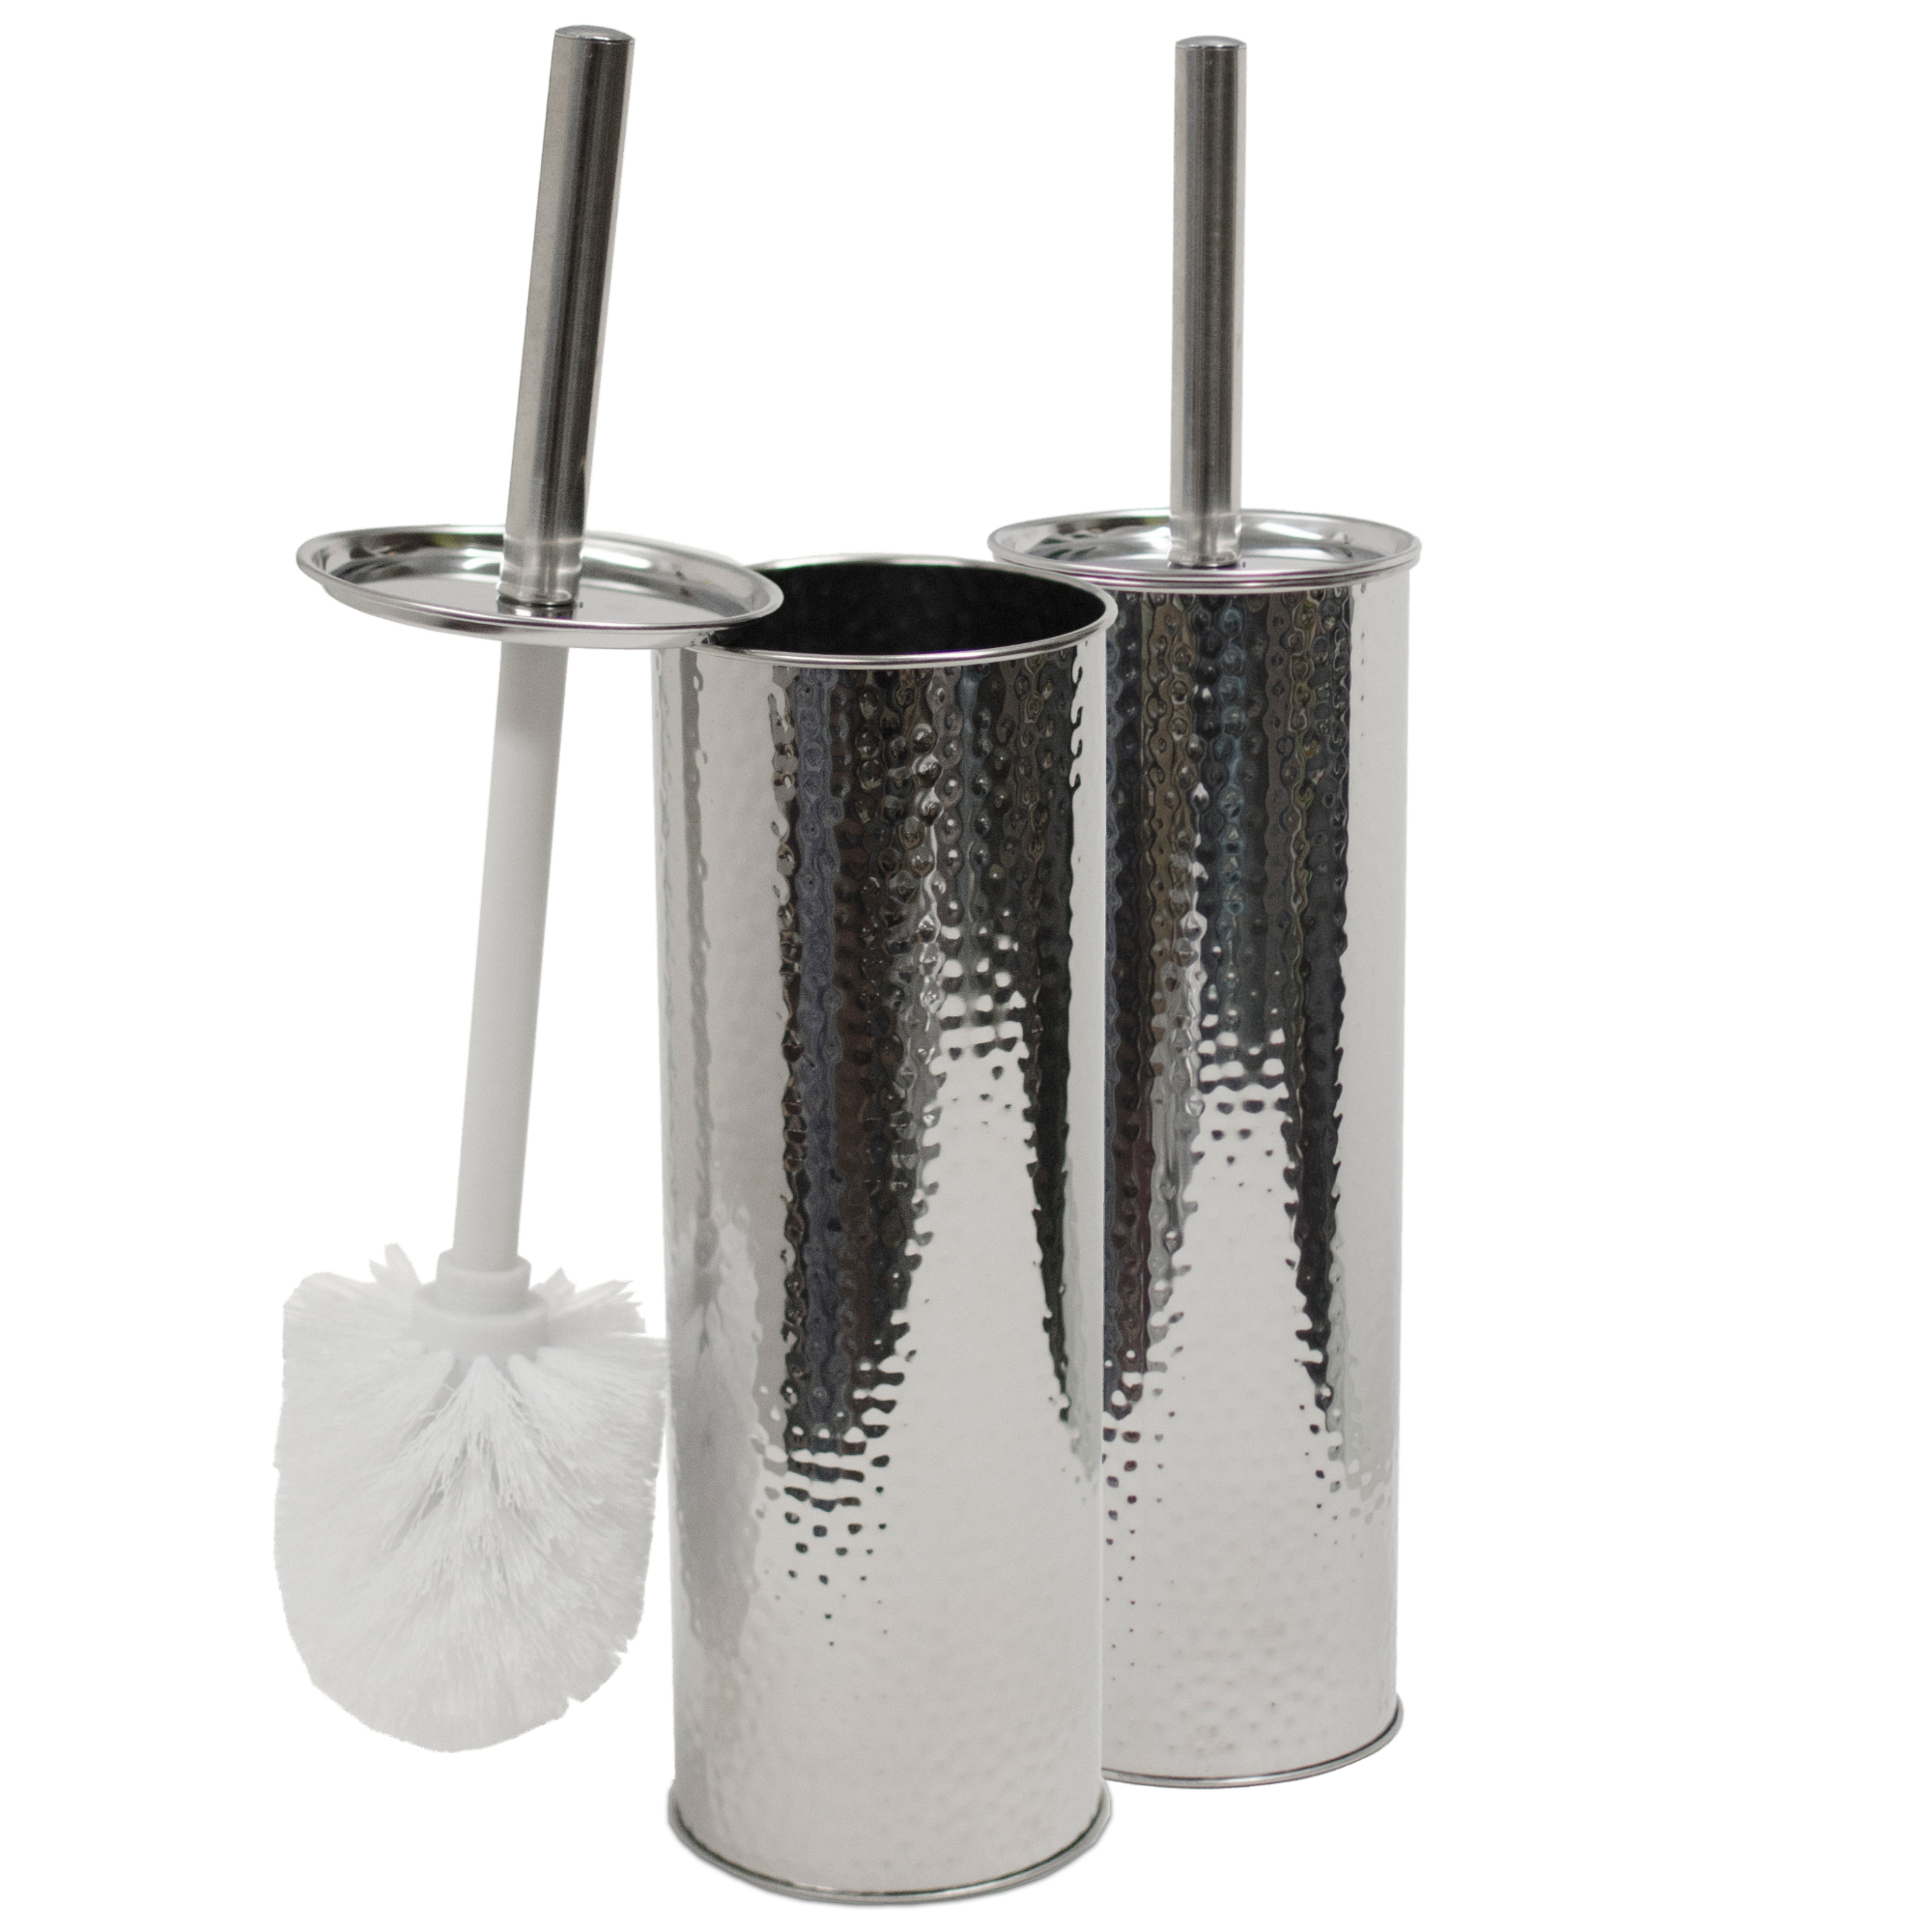 Oasis Collection Stainless Steel Toilet Brush & Holder, TB029830, Accent Hammered Mirror Finish - 2 Pack